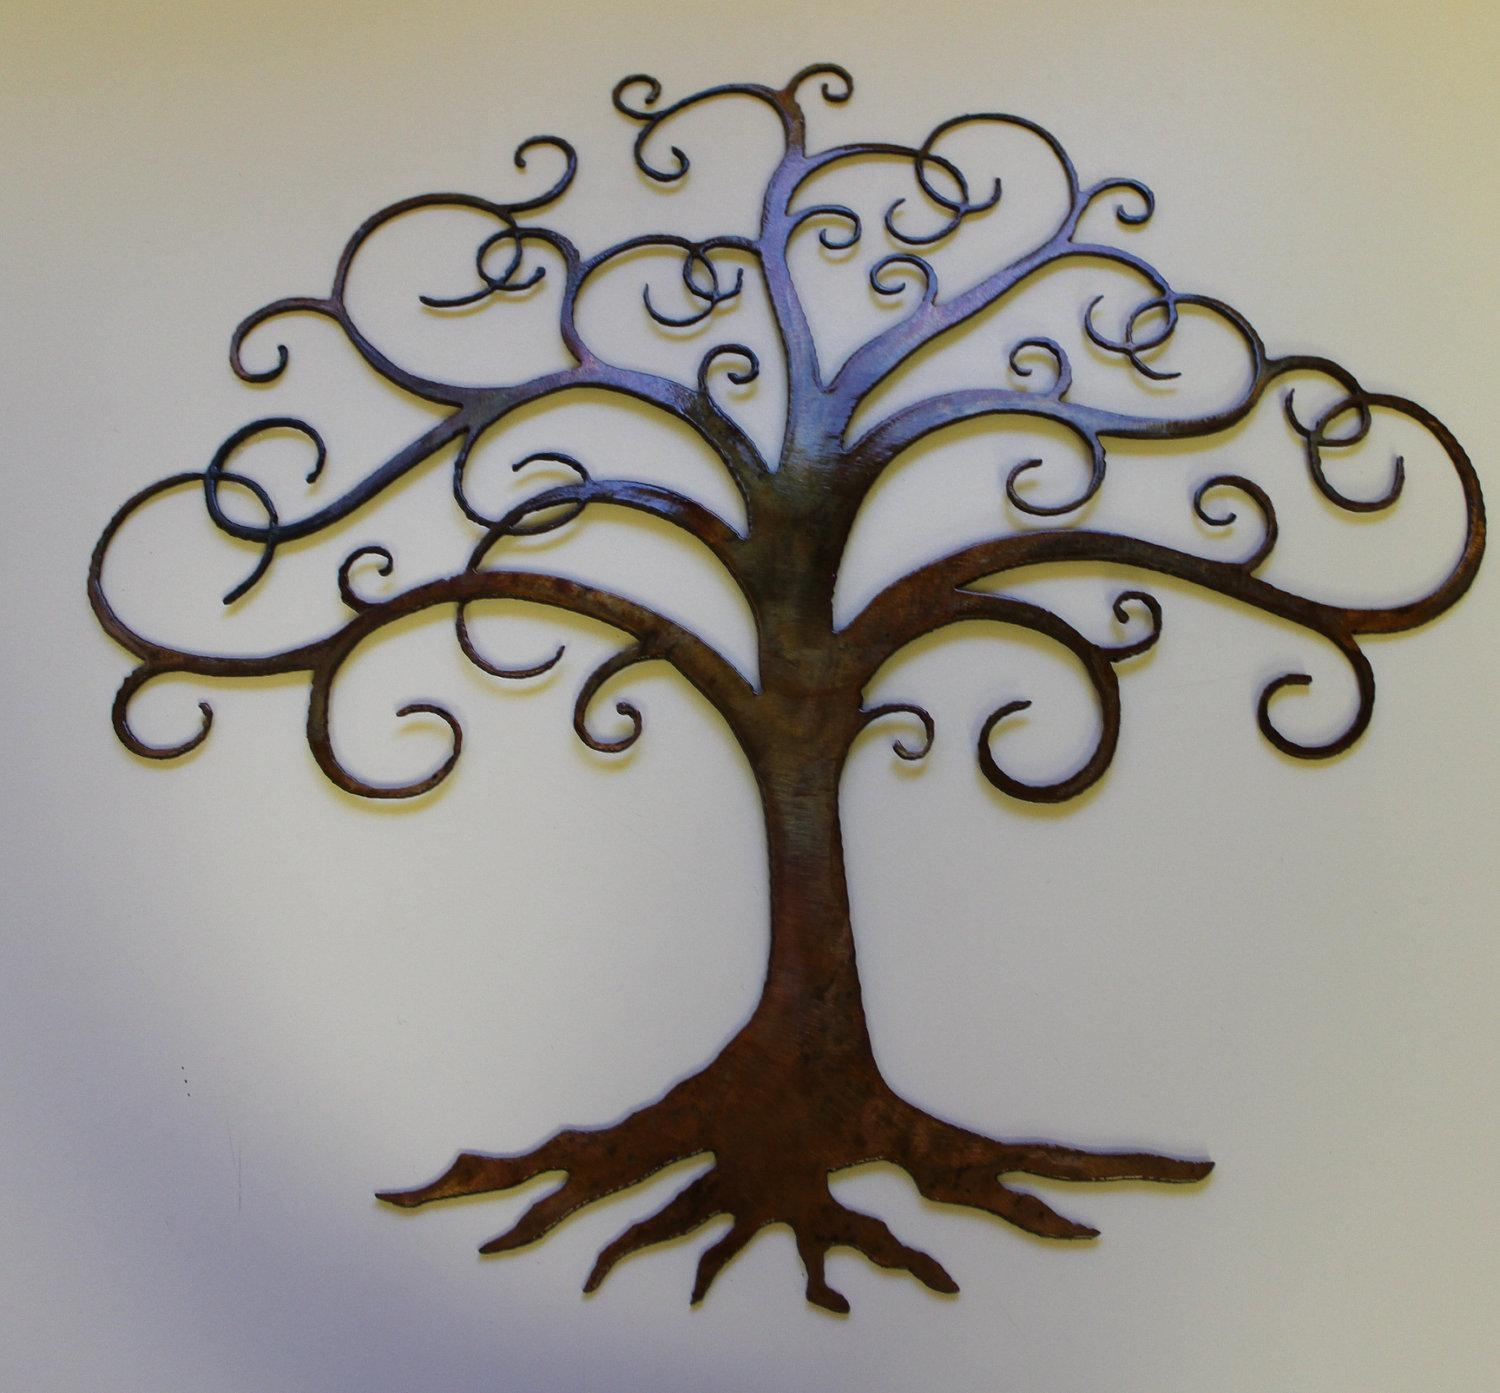 Wall Art Designs: Metal Wall Art Trees Metal Wall Art Decor Metal For Iron Art For Walls (Image 14 of 20)